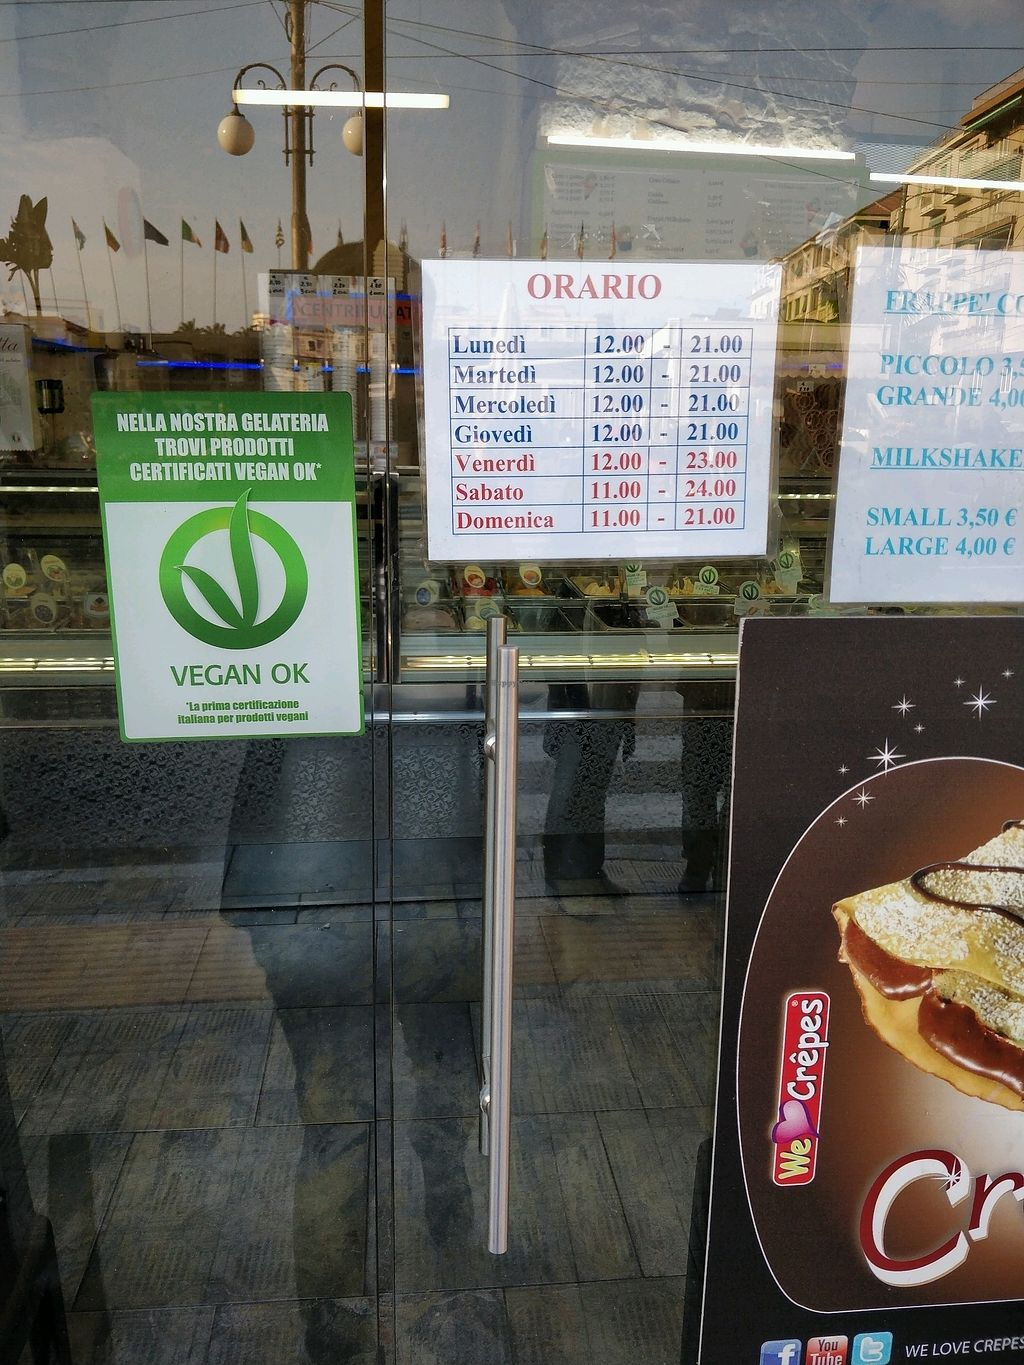 """Photo of Slurp Gelateria  by <a href=""""/members/profile/Logge"""">Logge</a> <br/>vegan ok <br/> March 24, 2018  - <a href='/contact/abuse/image/42117/375459'>Report</a>"""